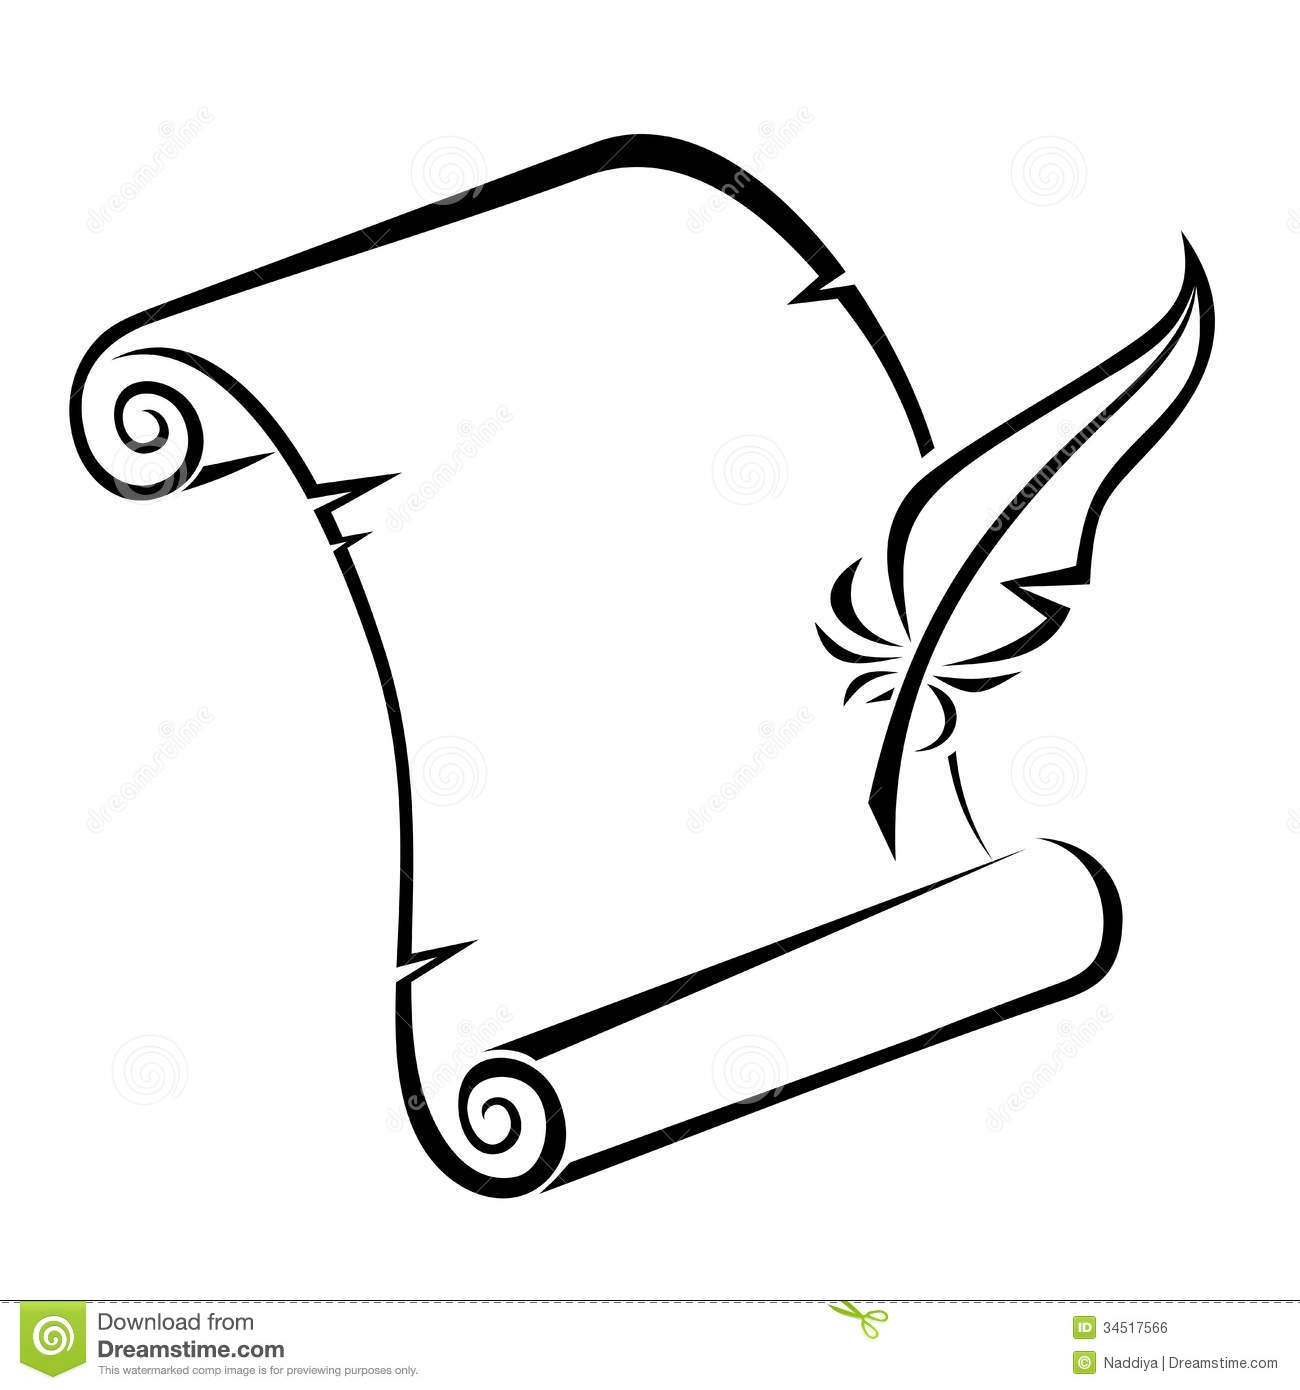 Collection of Quill clipart.